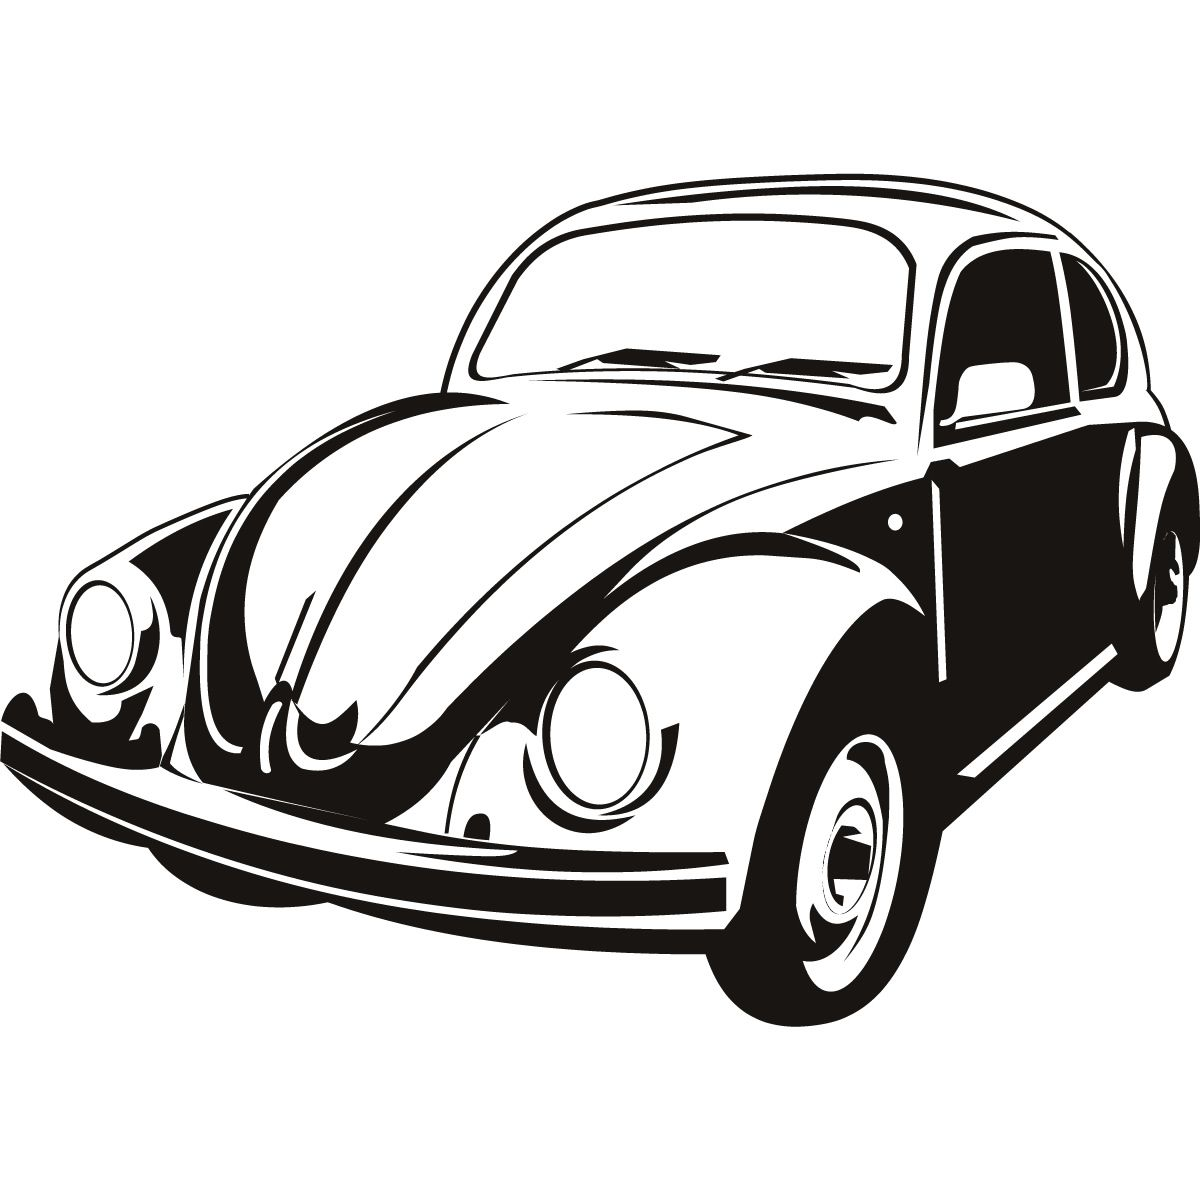 jack daniels silhouette vw pinterest Beatles Yellow Submarine Vans Shoes jack daniels silhouette beetle cartoon car wall art beetle drawing